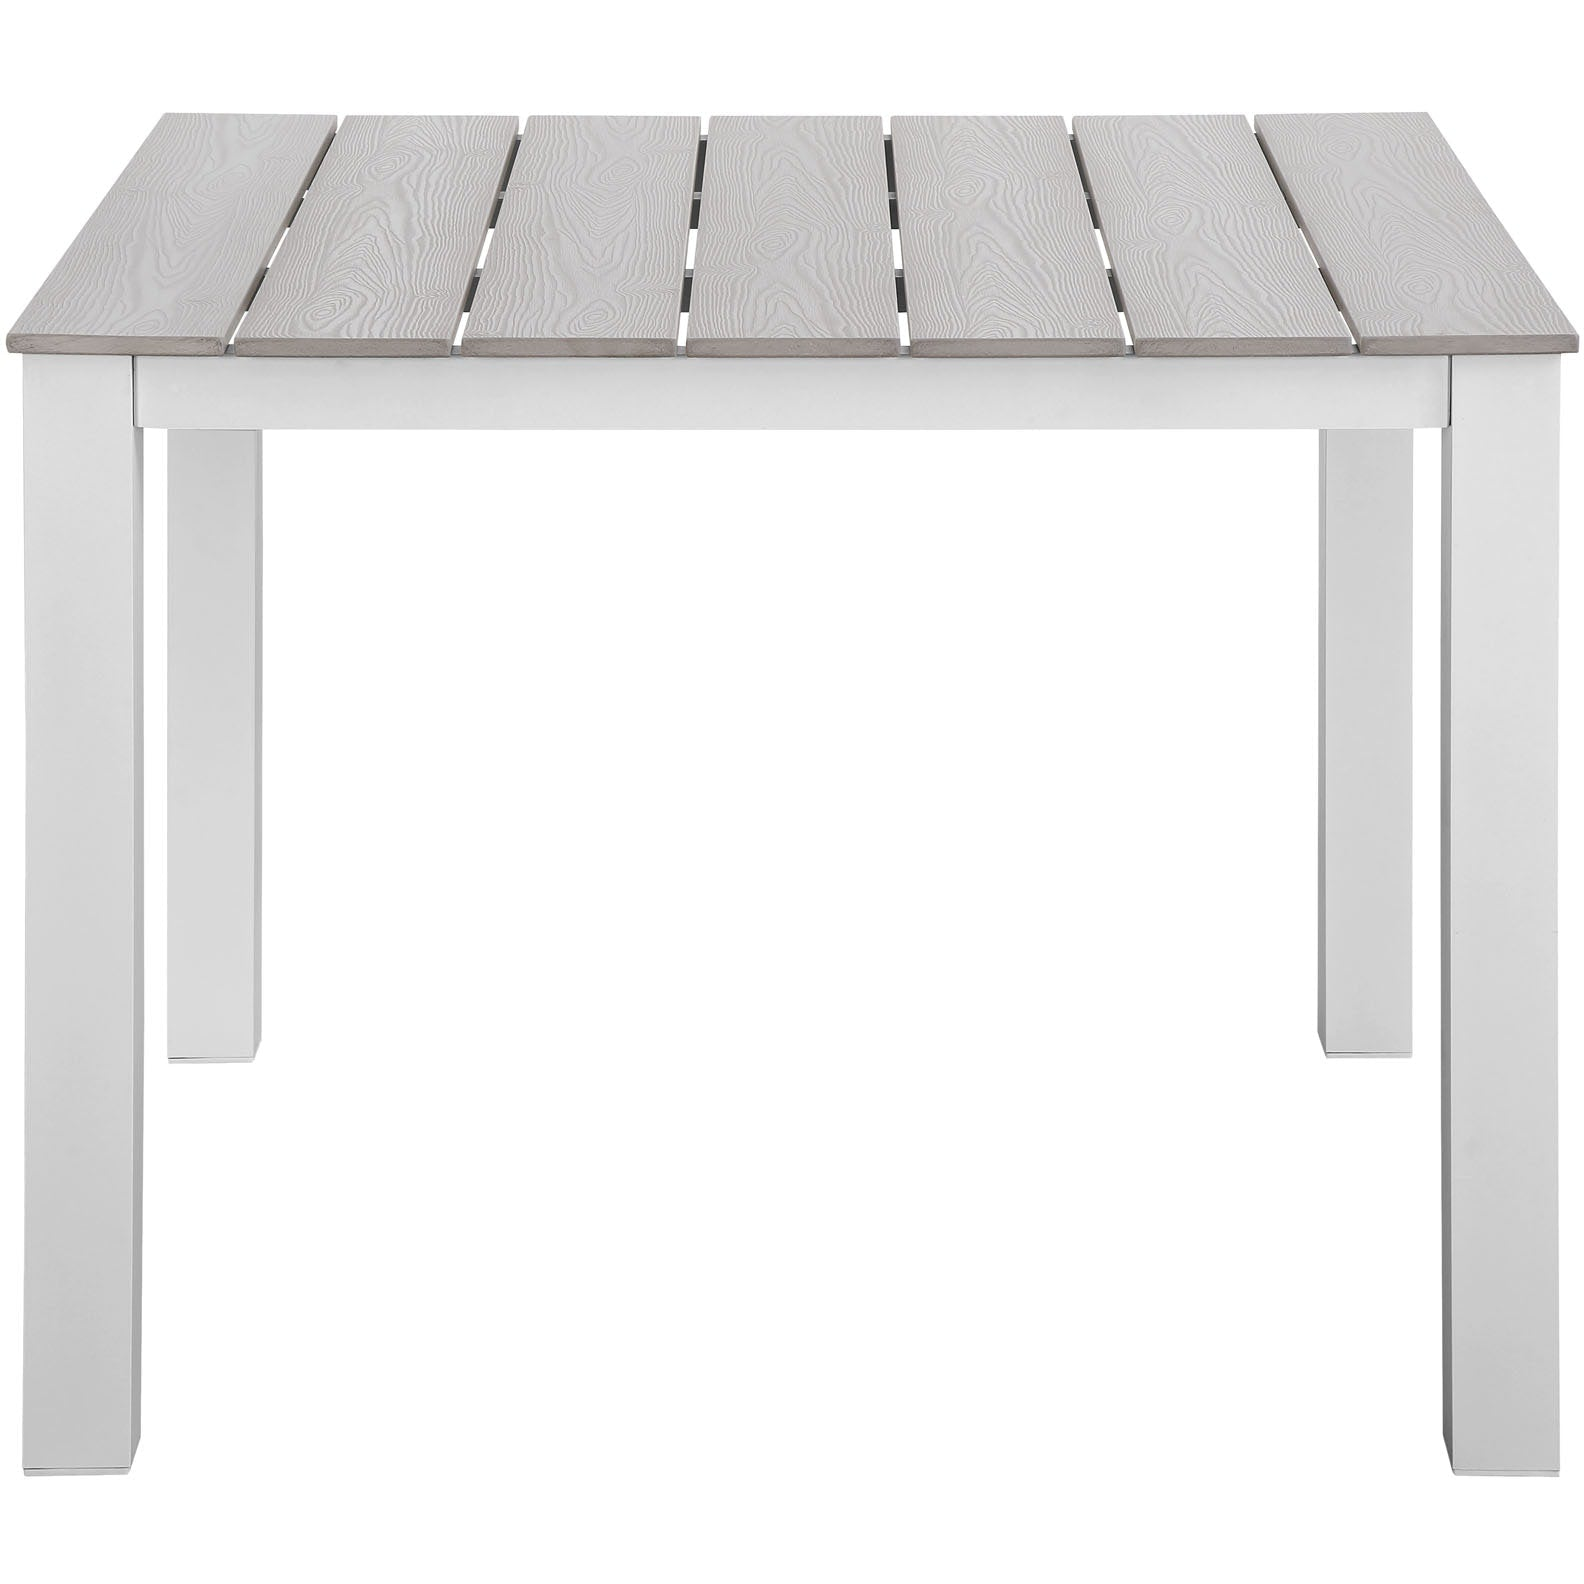 Maine 5 Piece Outdoor Patio Dining Set - White Light Gray